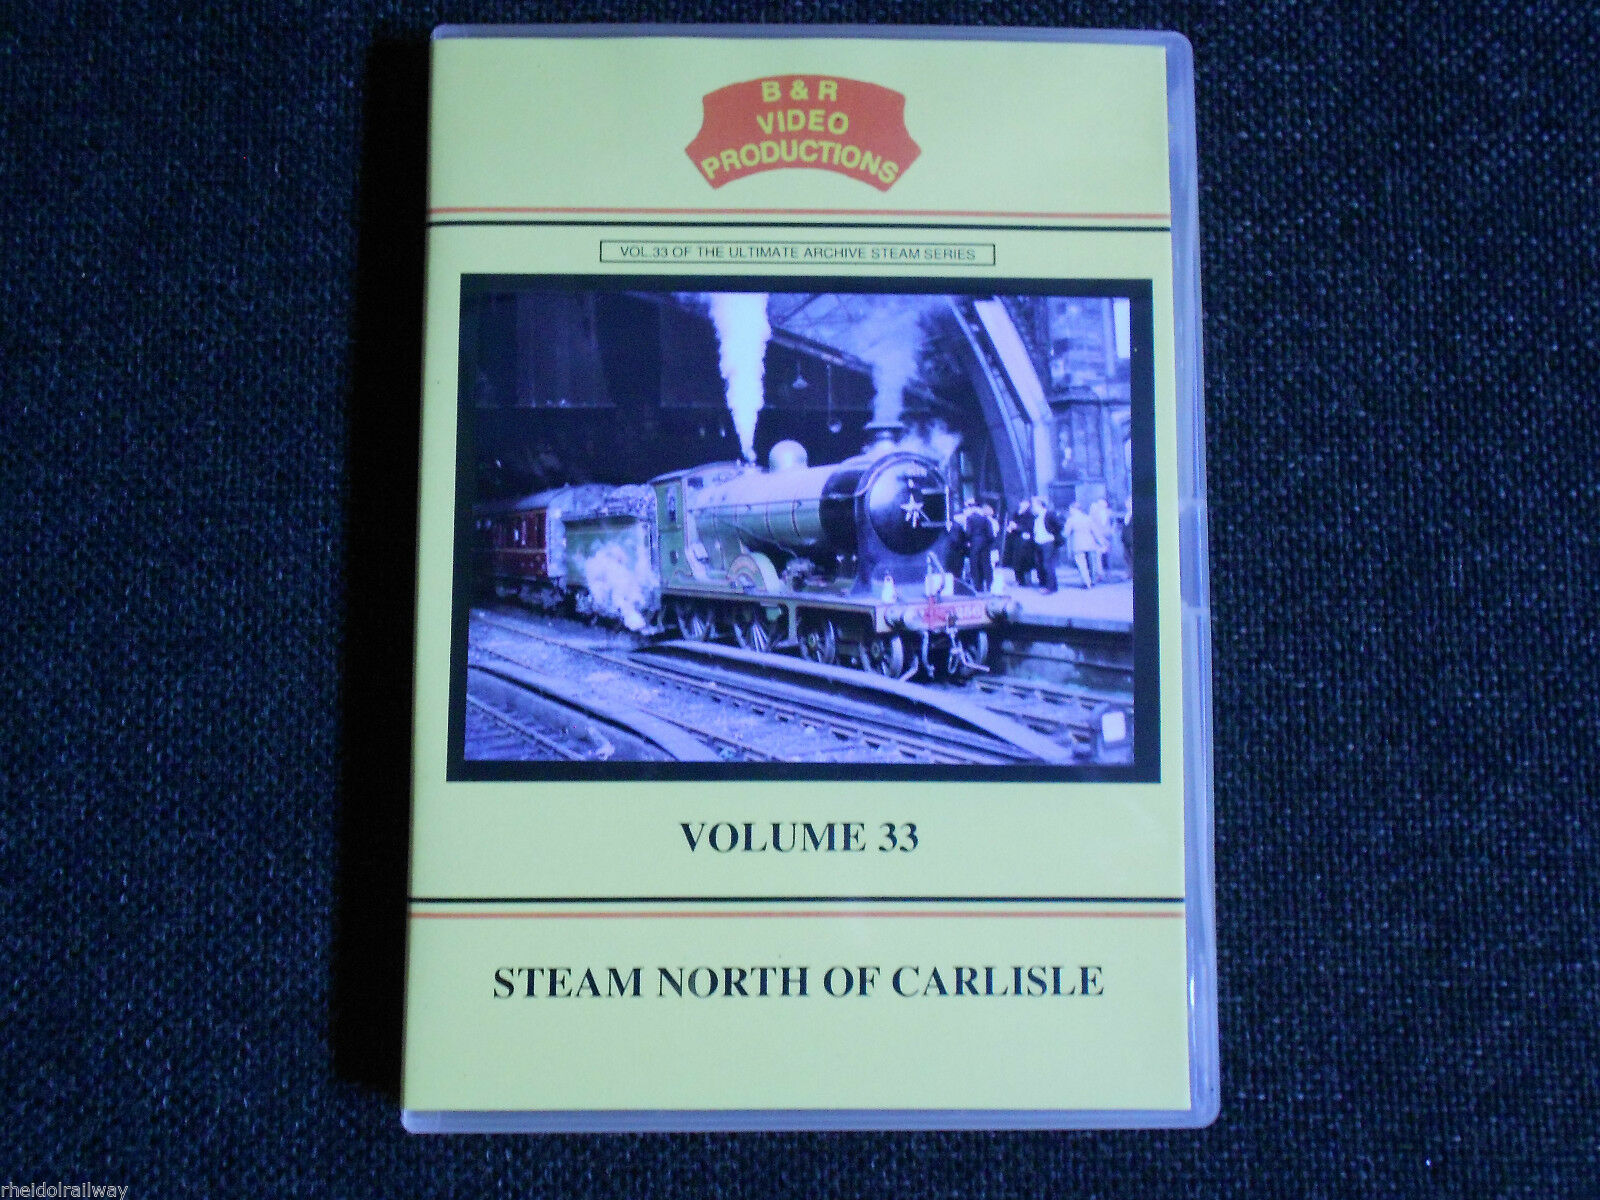 Waverley Route, Beattock, Kingmoor, Steam North of Carlisle, B & R Volume 33 DVD